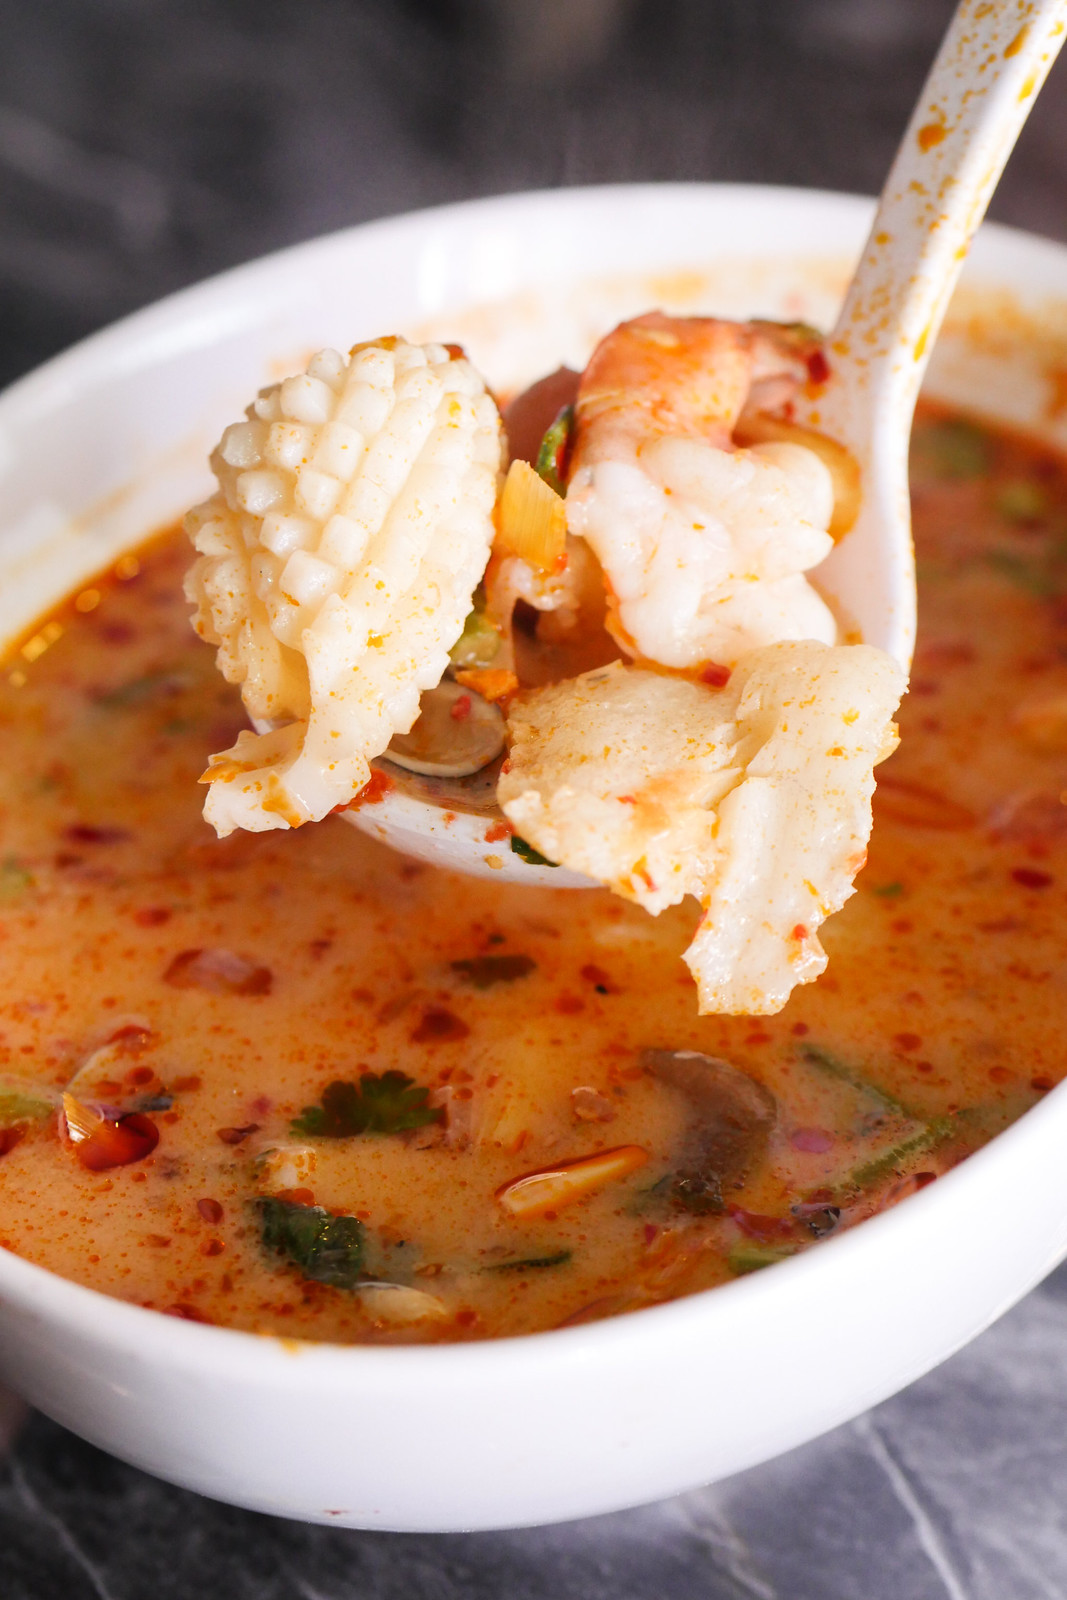 Soi Thai Soi Nice: Seafood Tom Yum Soup